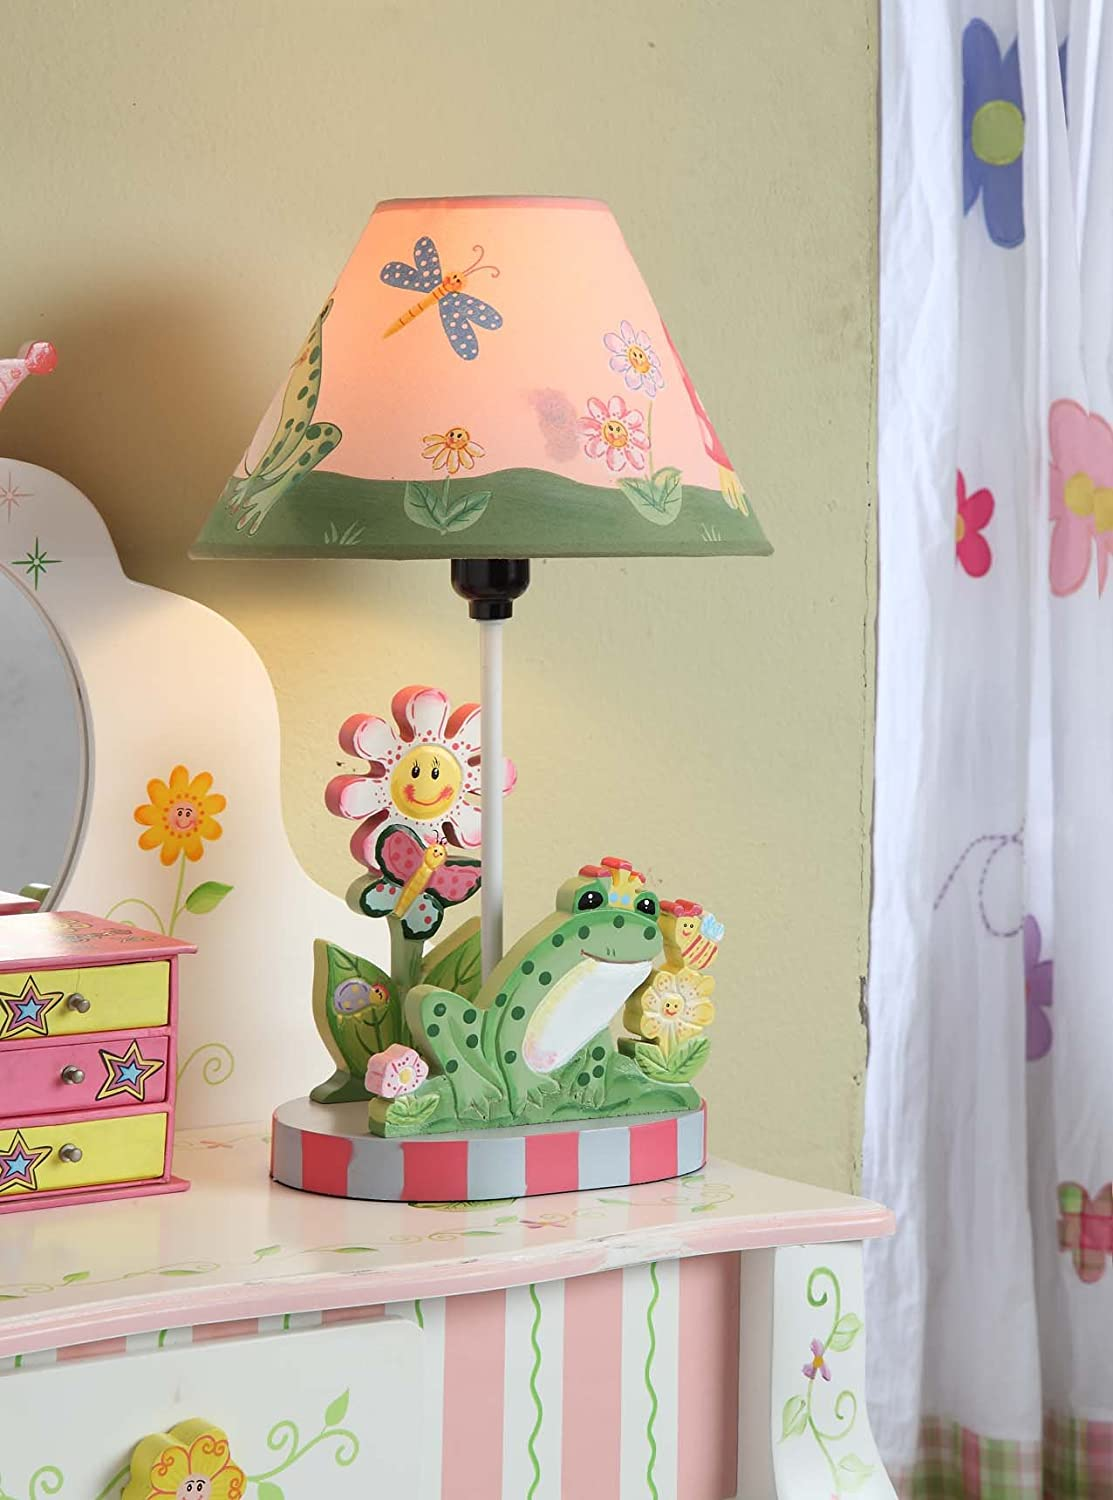 Amazon fantasy fields magic garden thematic kids table lamp amazon fantasy fields magic garden thematic kids table lamp imagination inspiring hand painted details non toxic lead free water based paint toys geotapseo Gallery